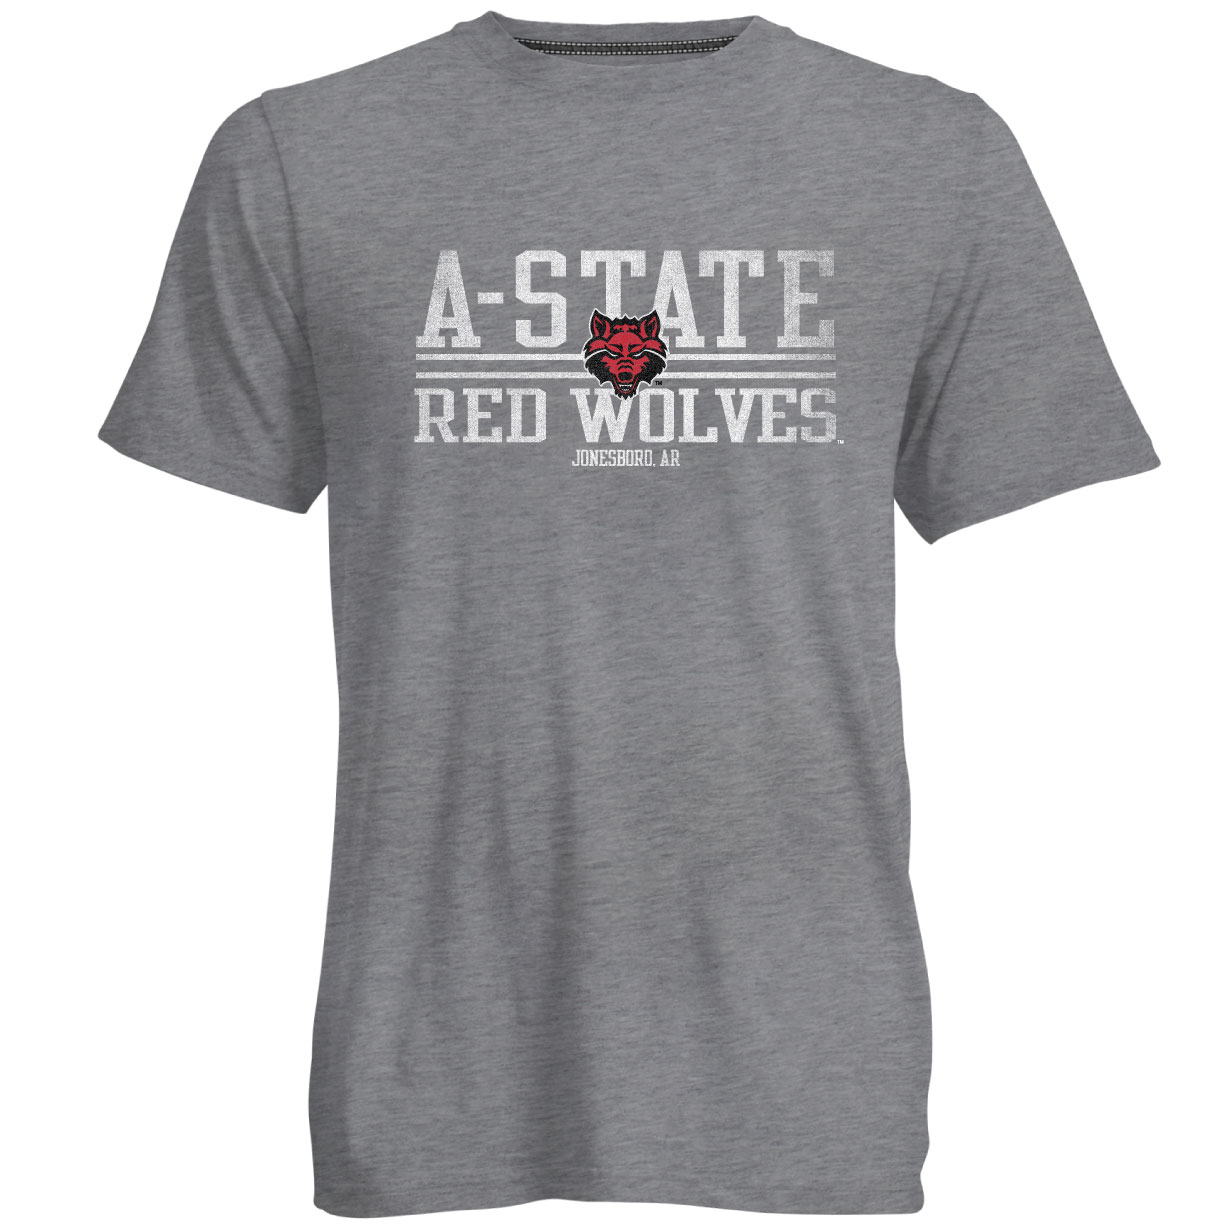 Arkansas State Red Wolves Go To Tee